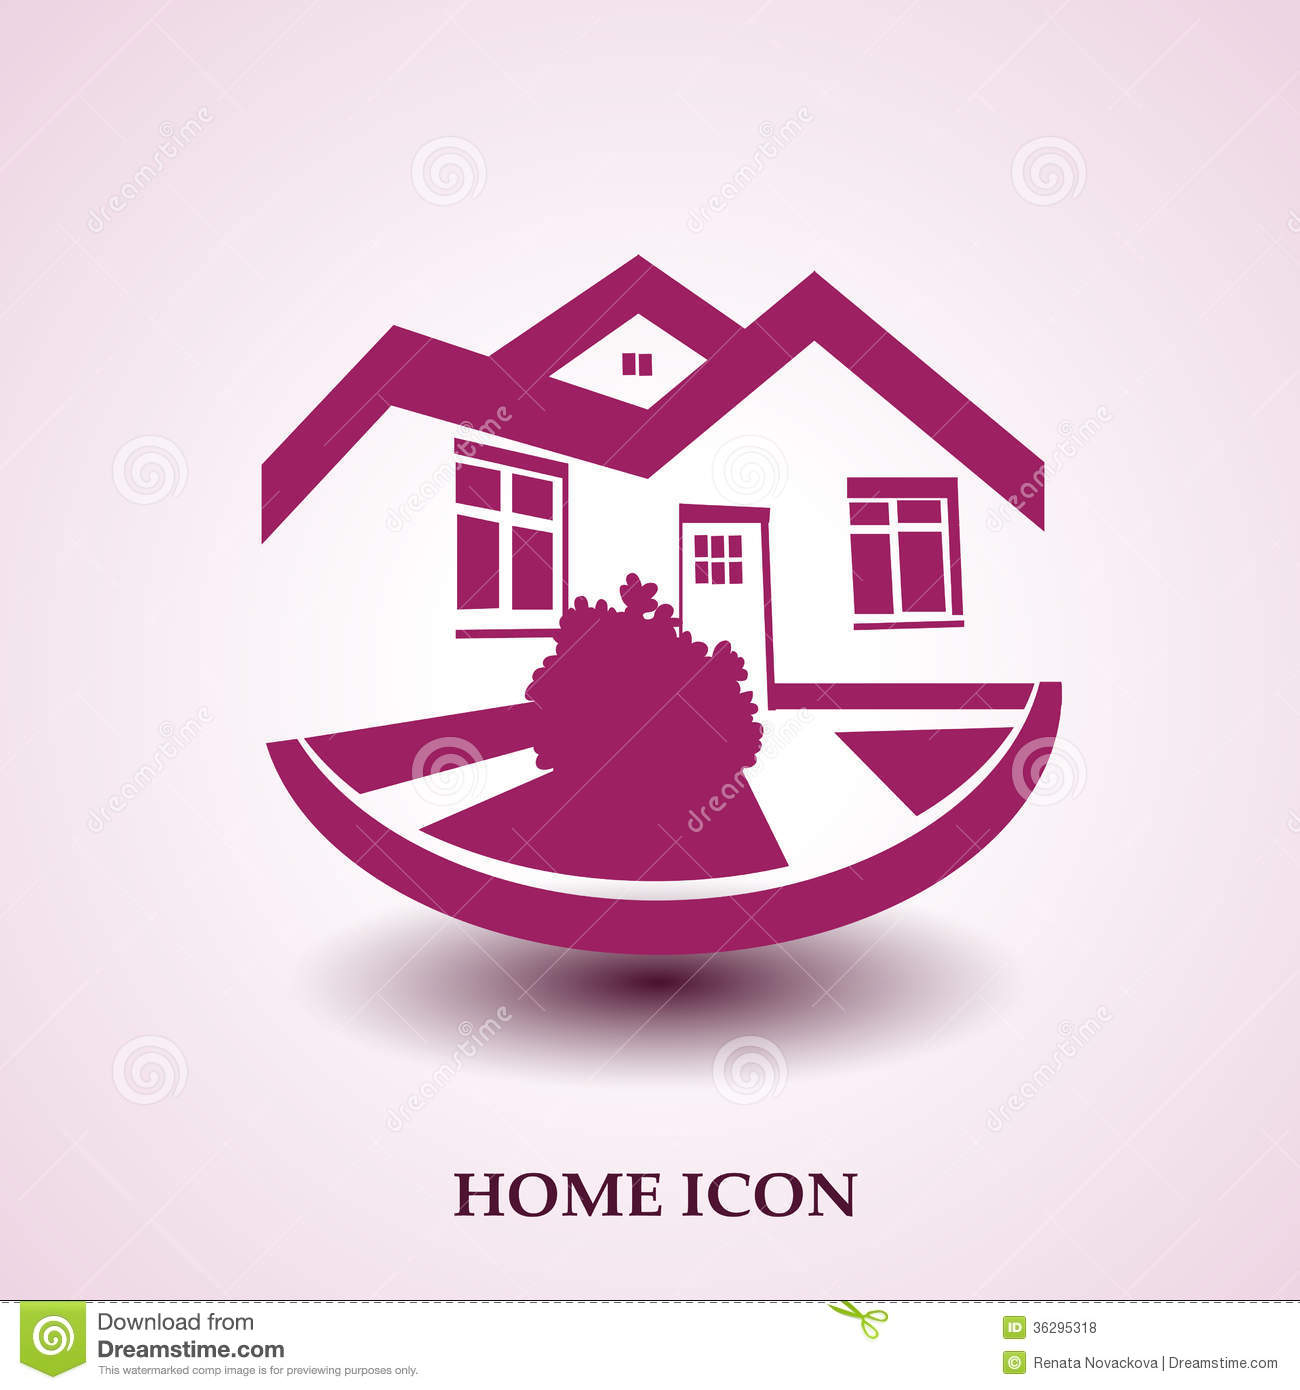 Symbol of home house icon realty silhouette real estate for Modern house logo